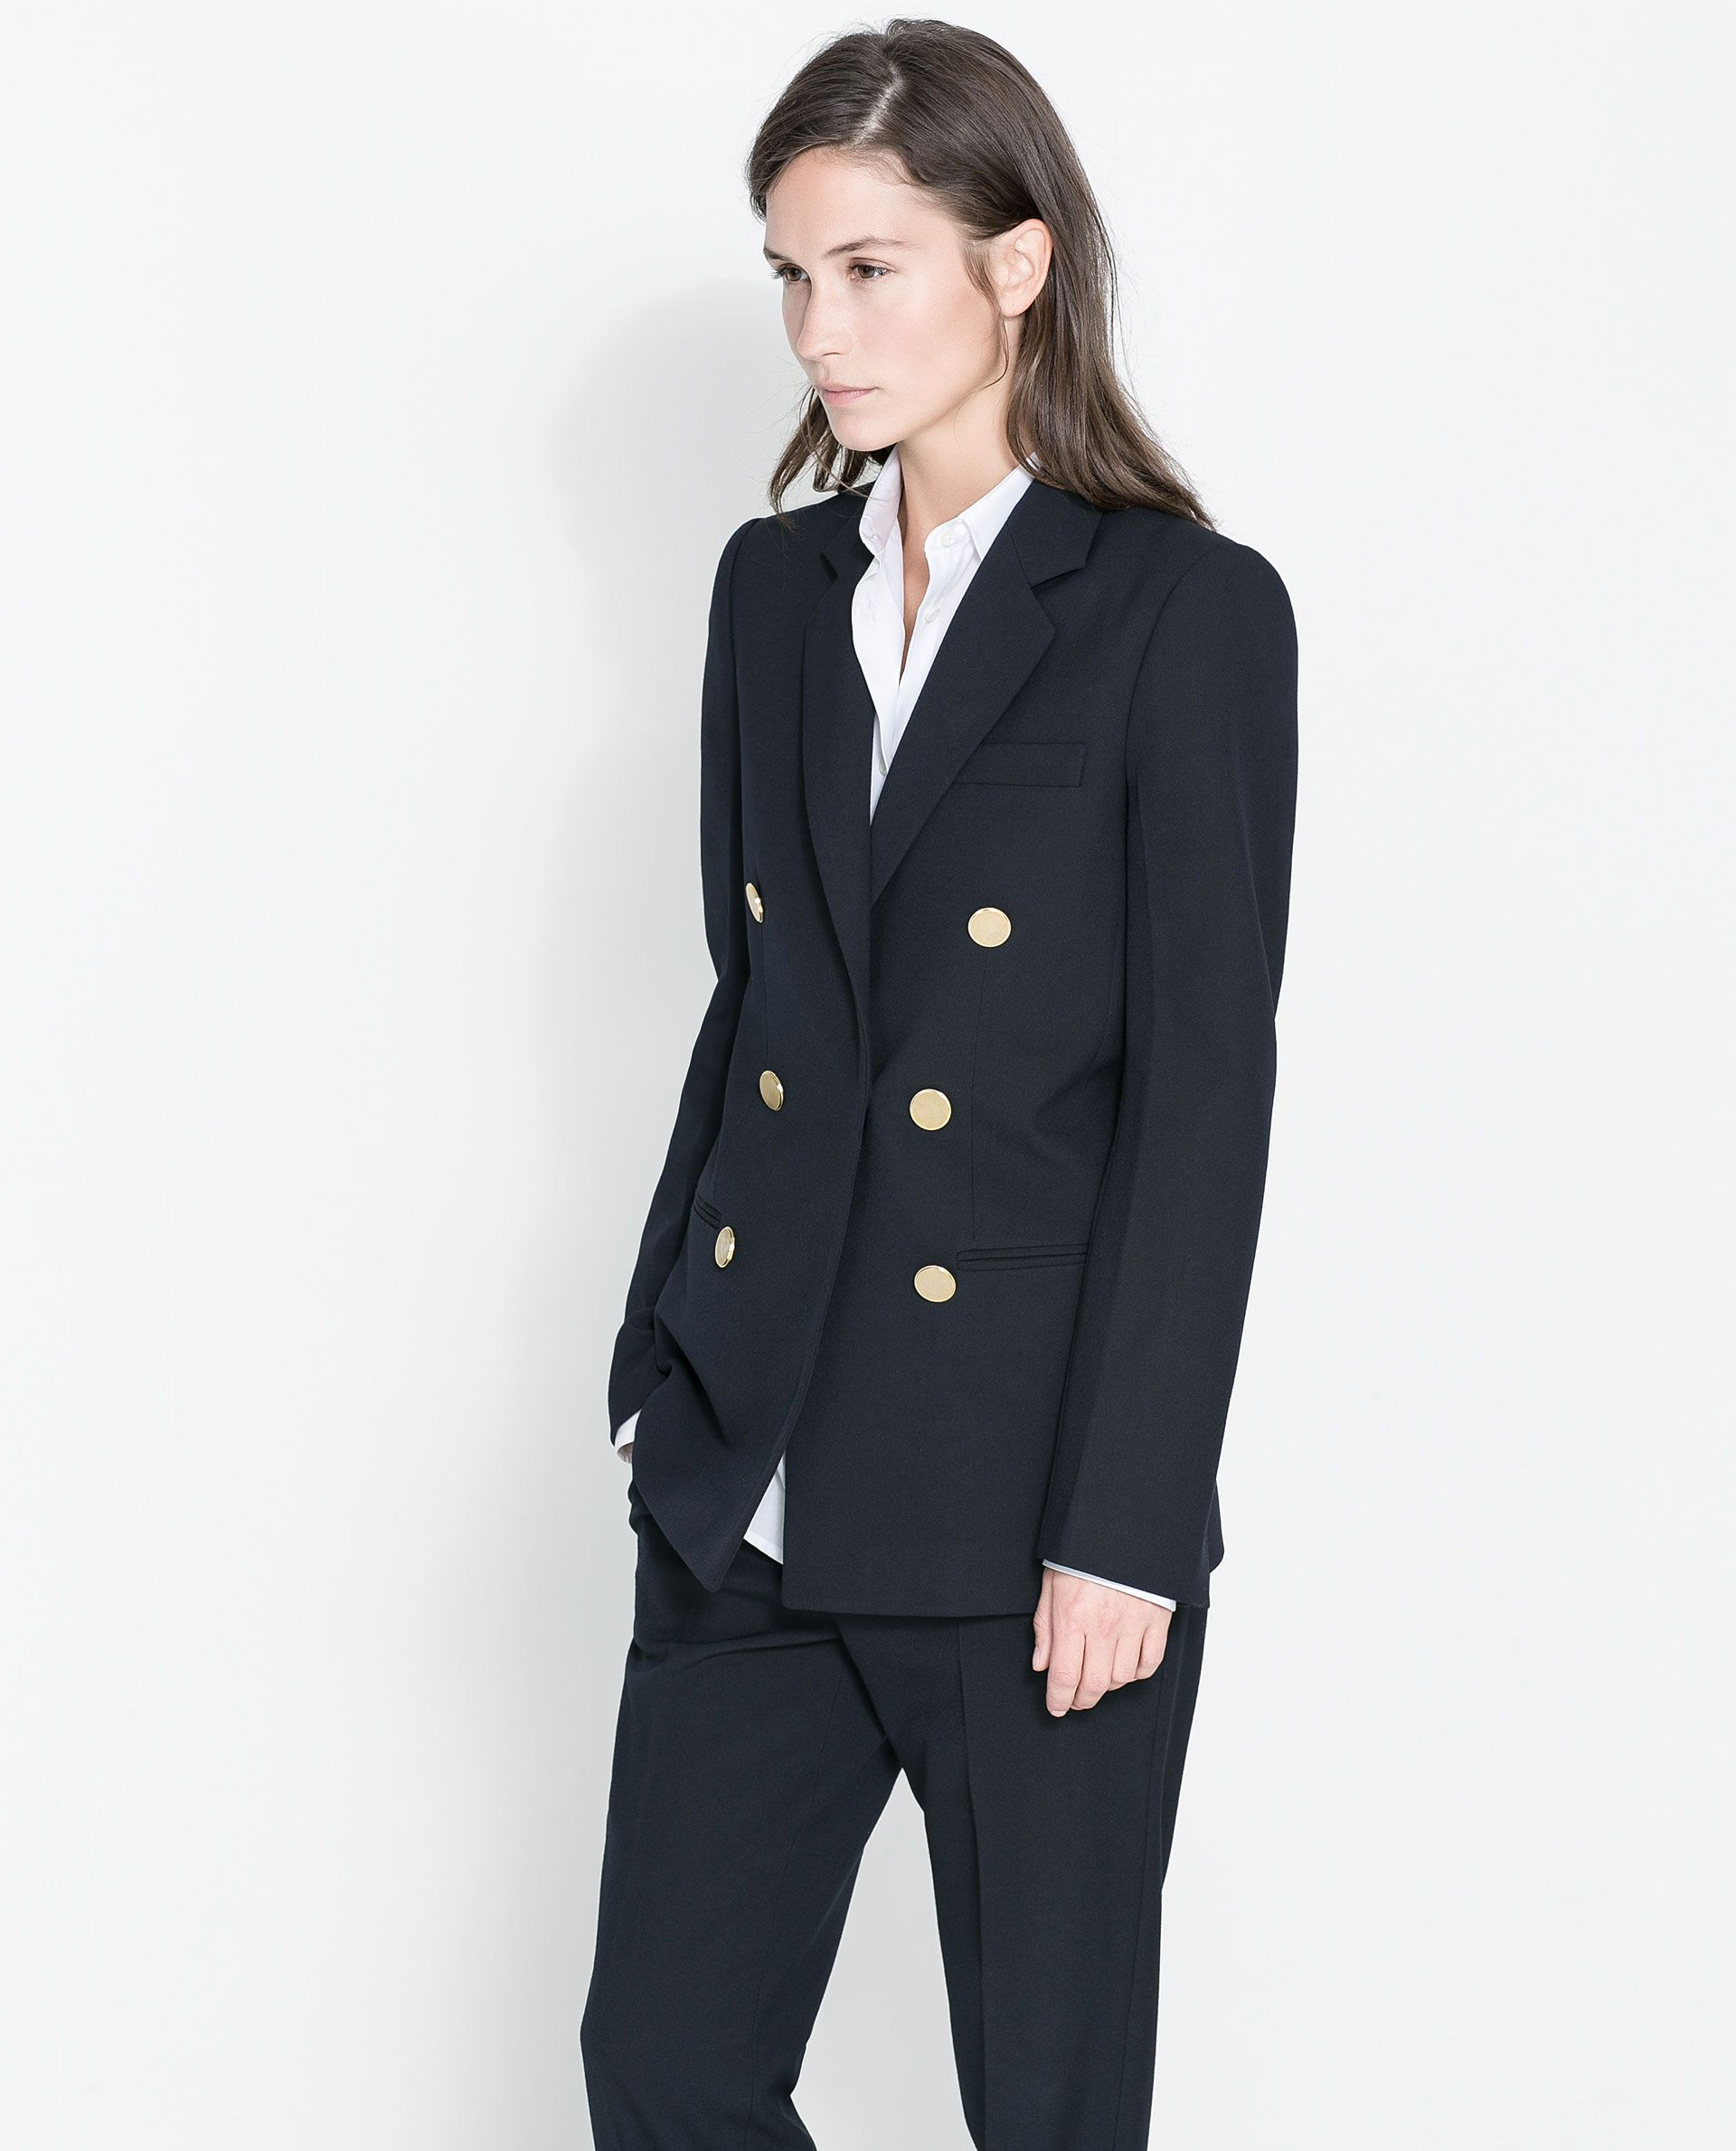 Zara Woman Studio Jacket With Golden Button Button Jacket Outfit Zara Jackets